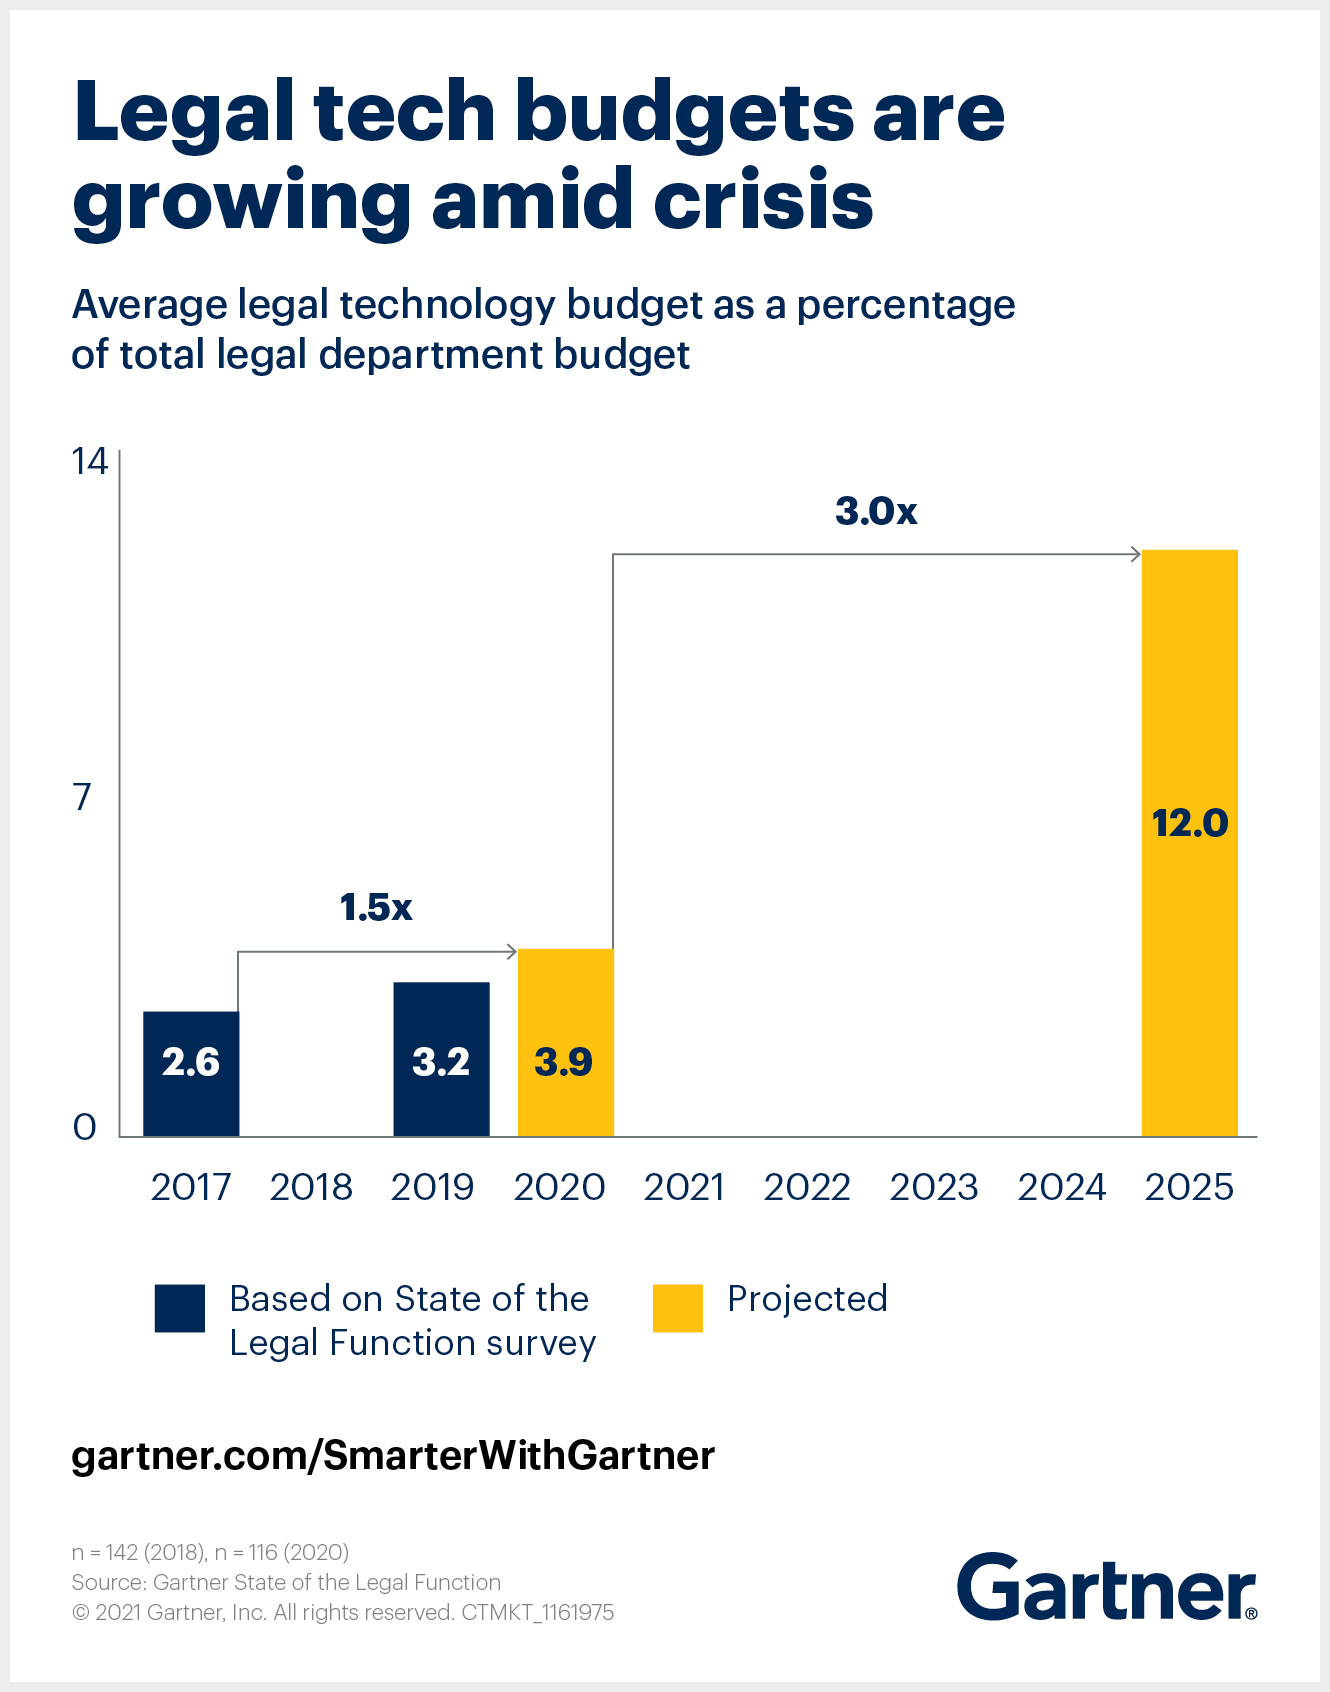 Gartner forecasts legal technology budgets will increase threefold by 2025.